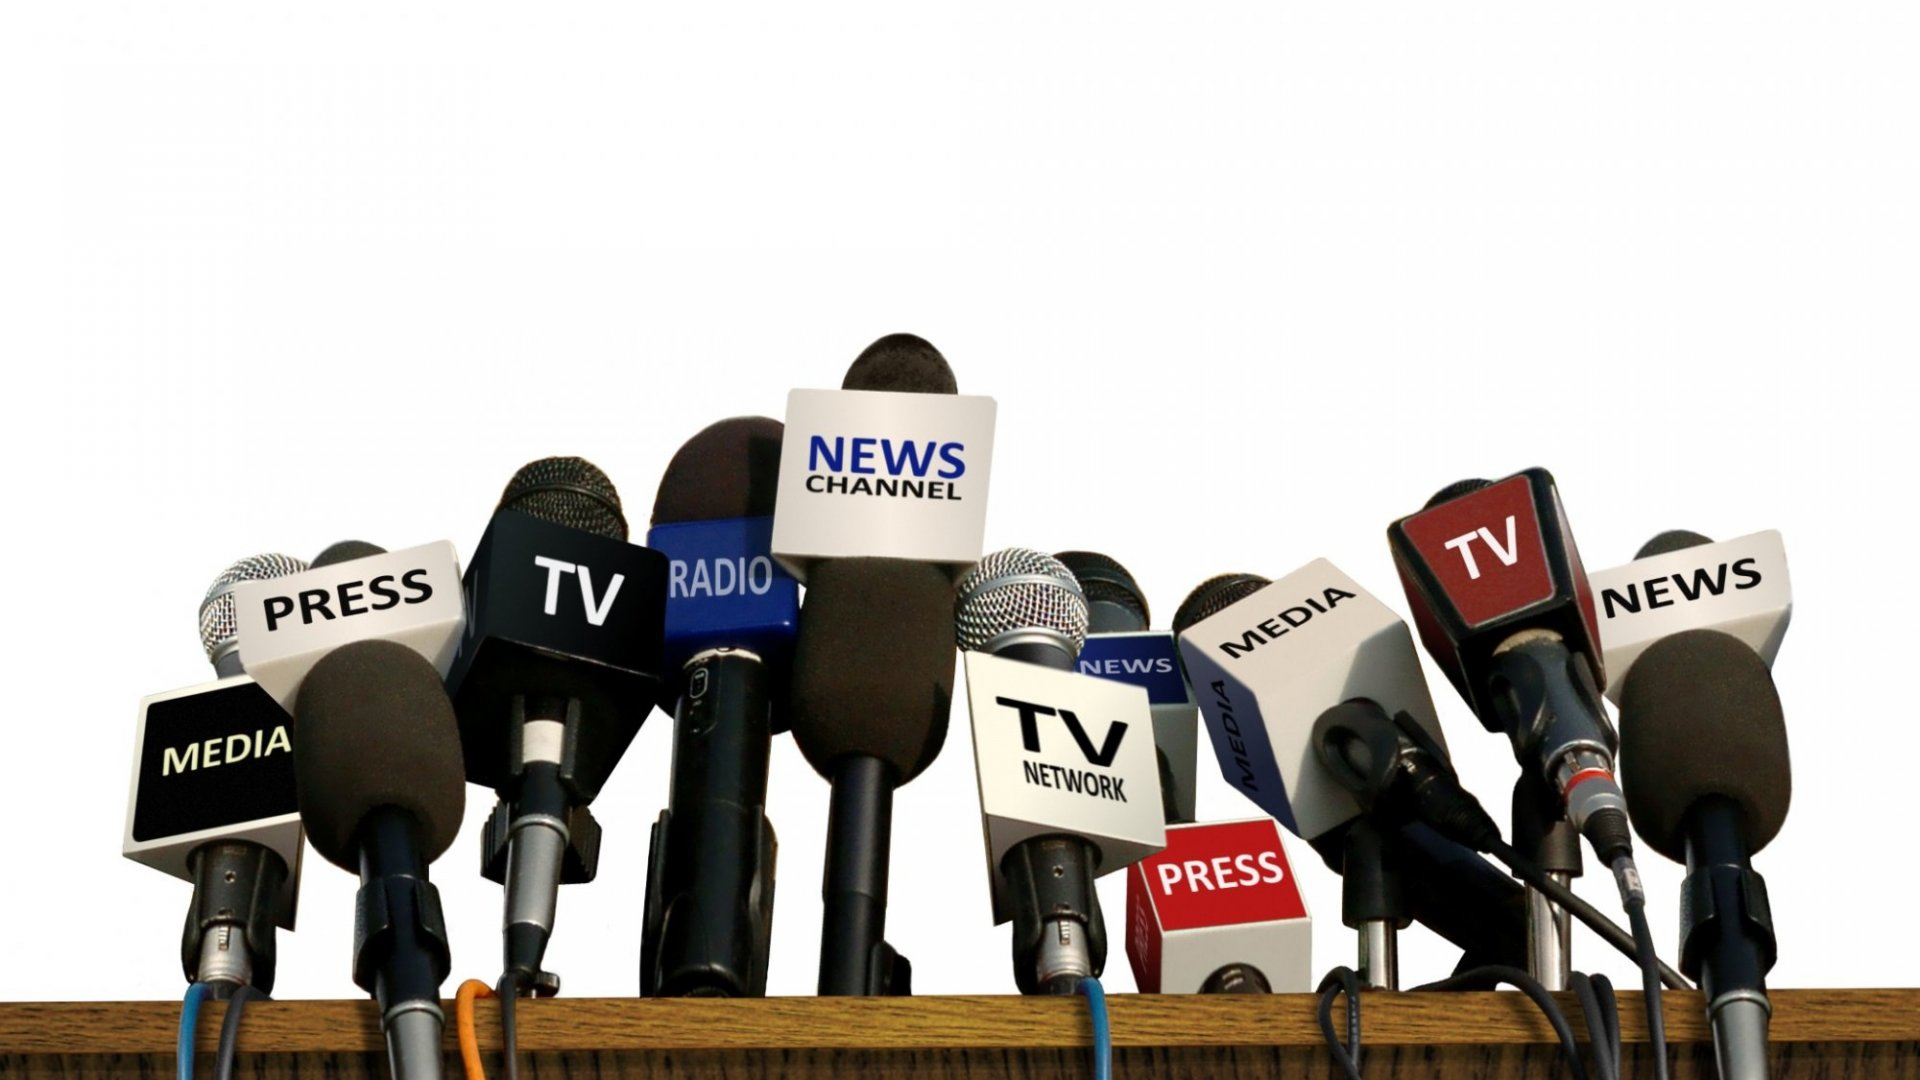 Why Your Killer Press Release Isn't Enough - 7 Things You Must Do to Stand Out From the Crowd